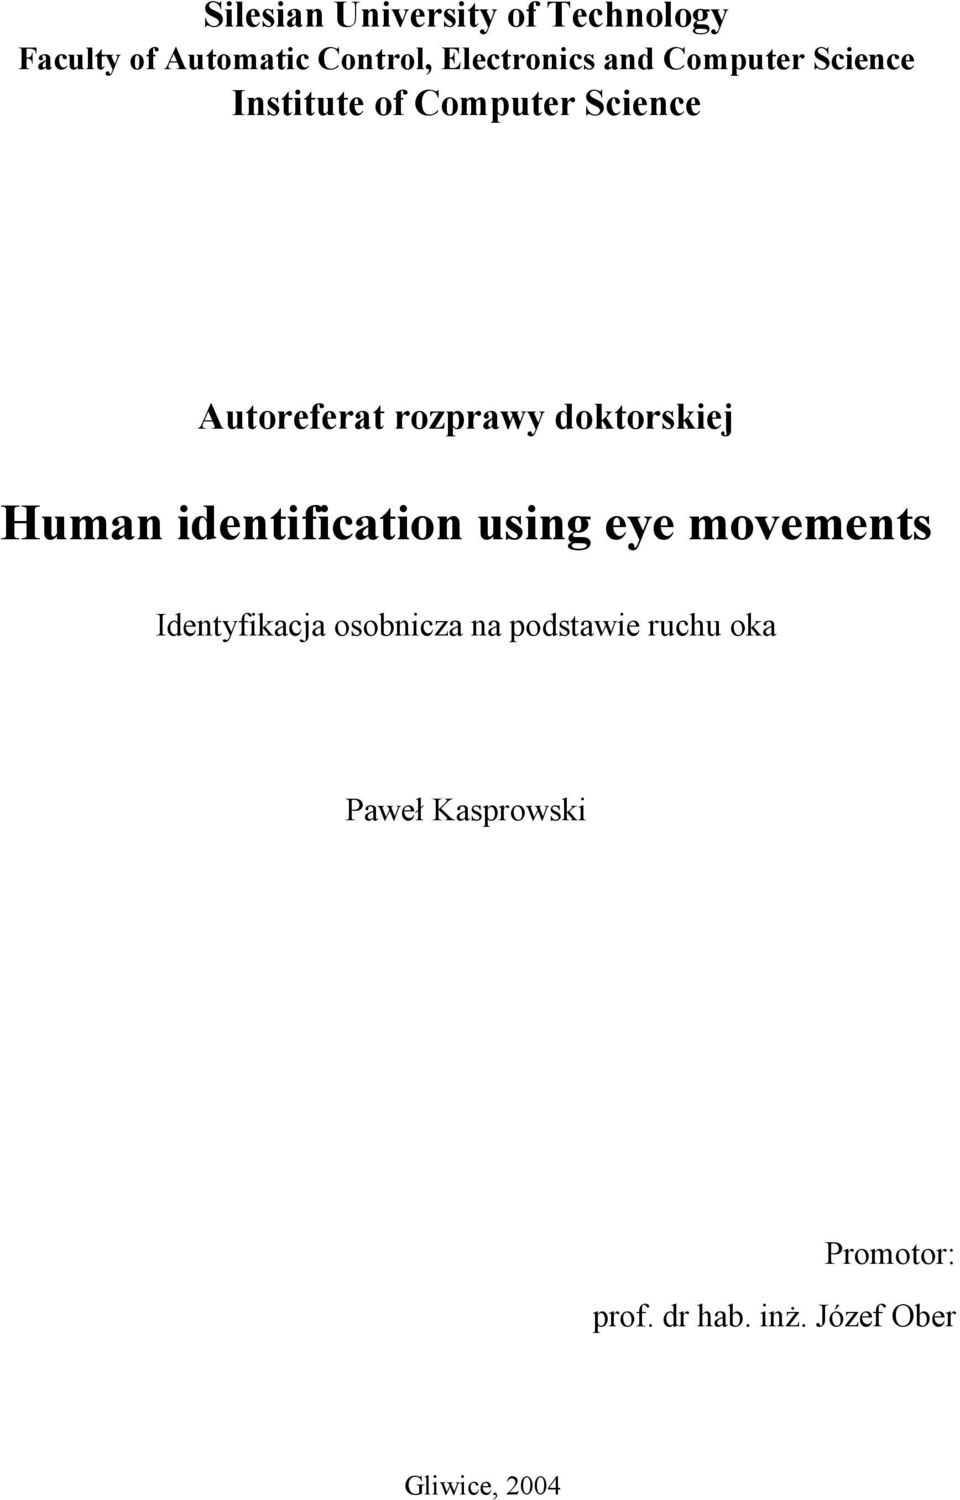 Autoreferat rozprawy doktorskiej Human identification using eye